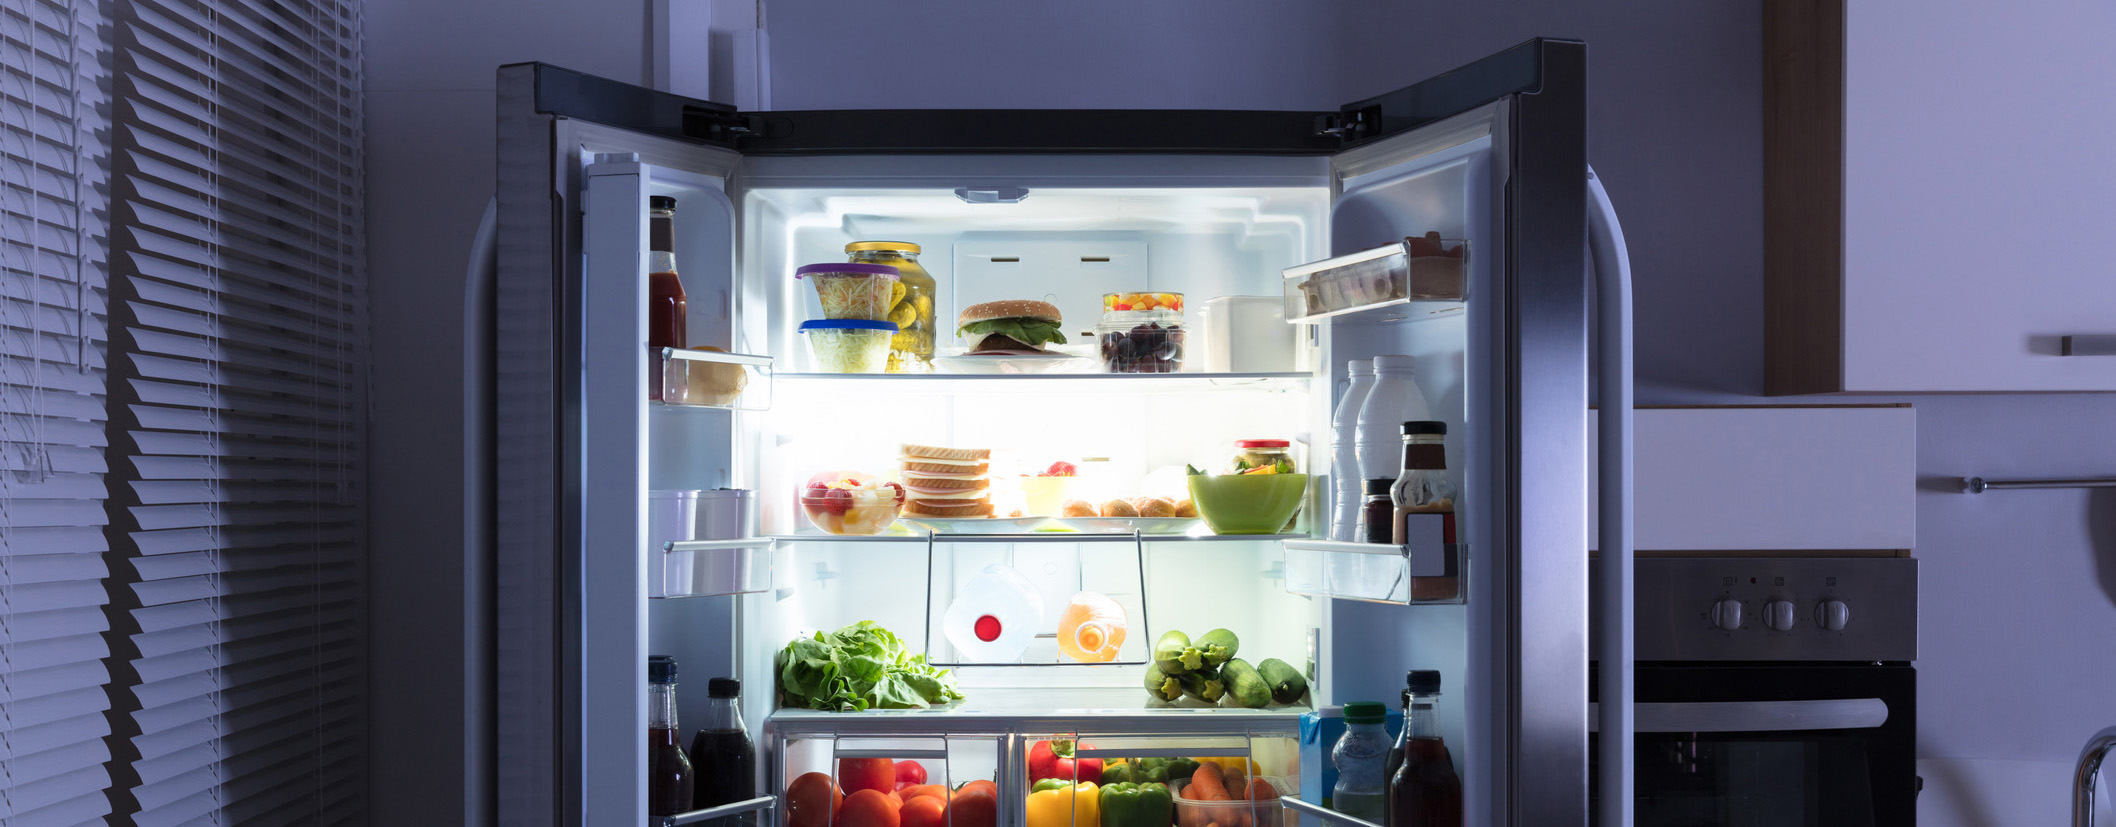 Conserving Energy with Your Refrigerator